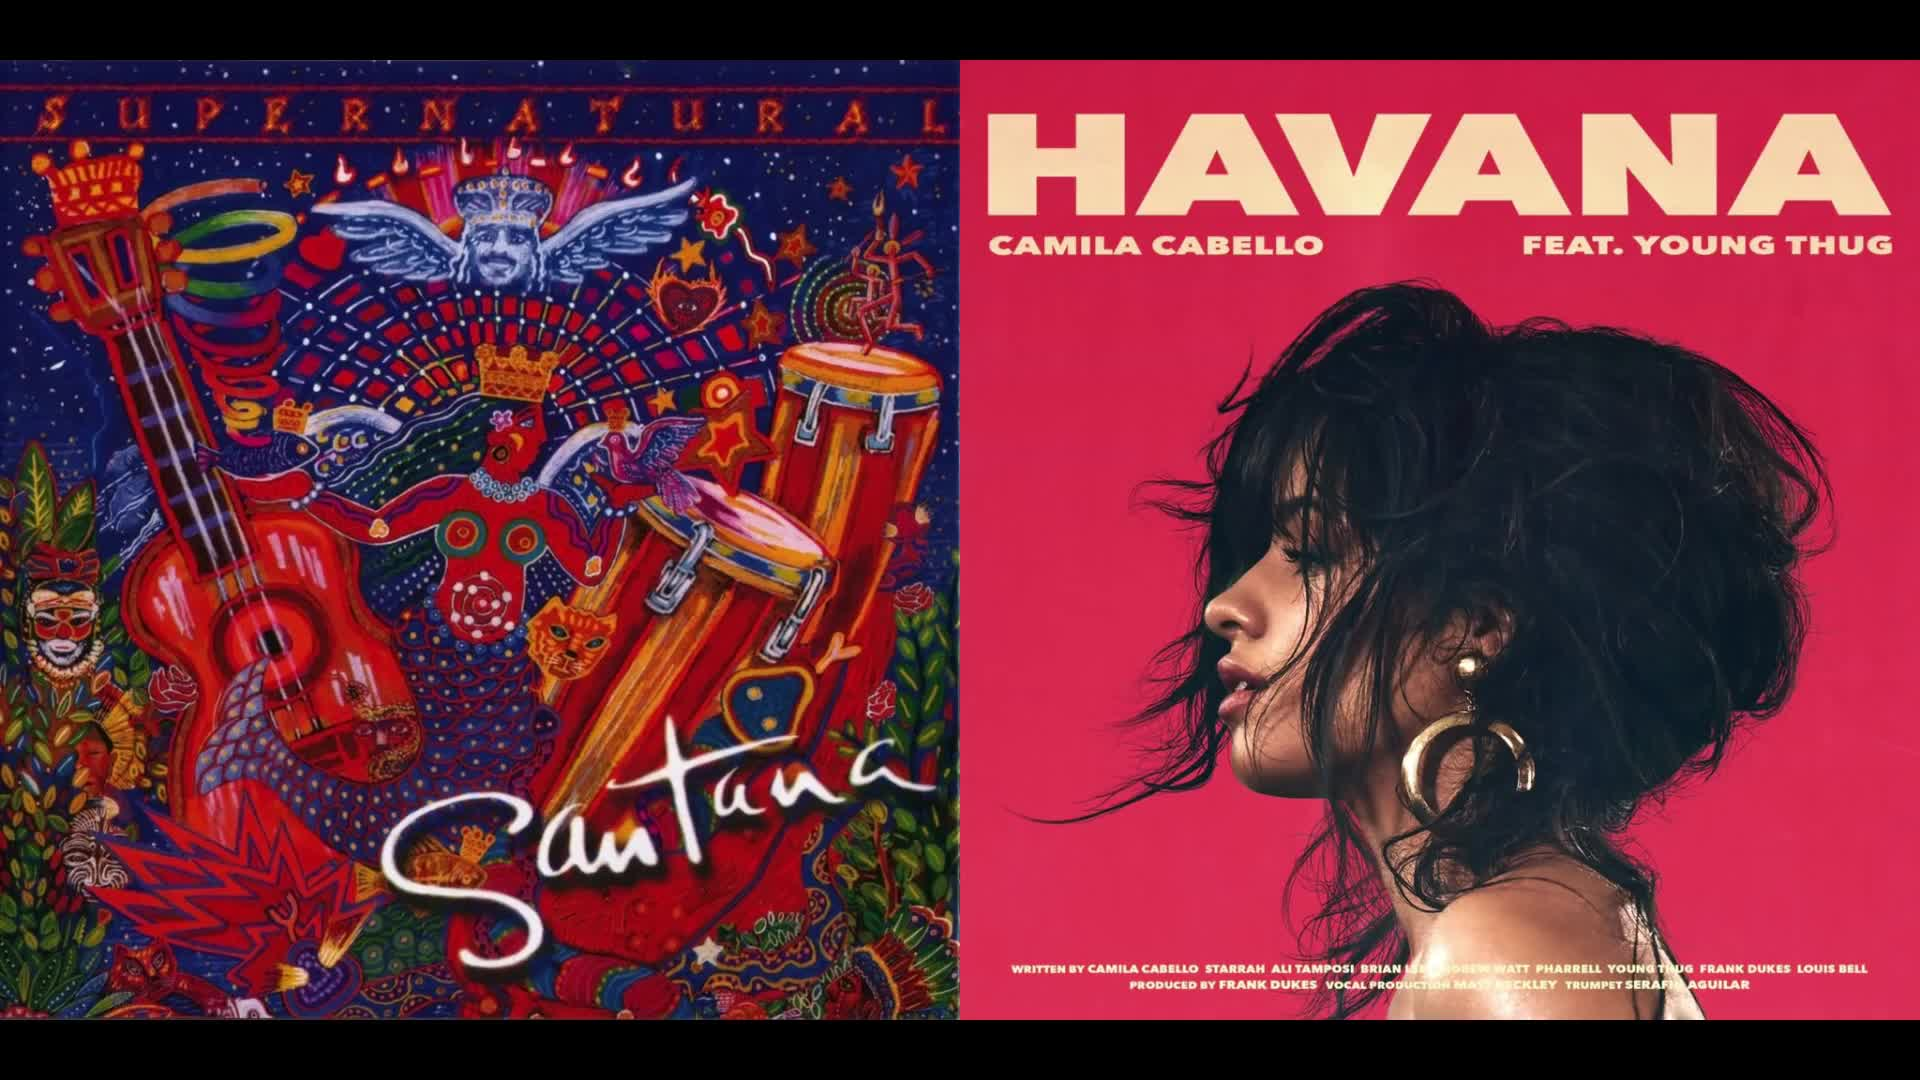 Santana vs Camila Cabello - Smooth vs Havana (Mashup. .. Sounds okay, but its hard to beat Santana with Rob Thomas